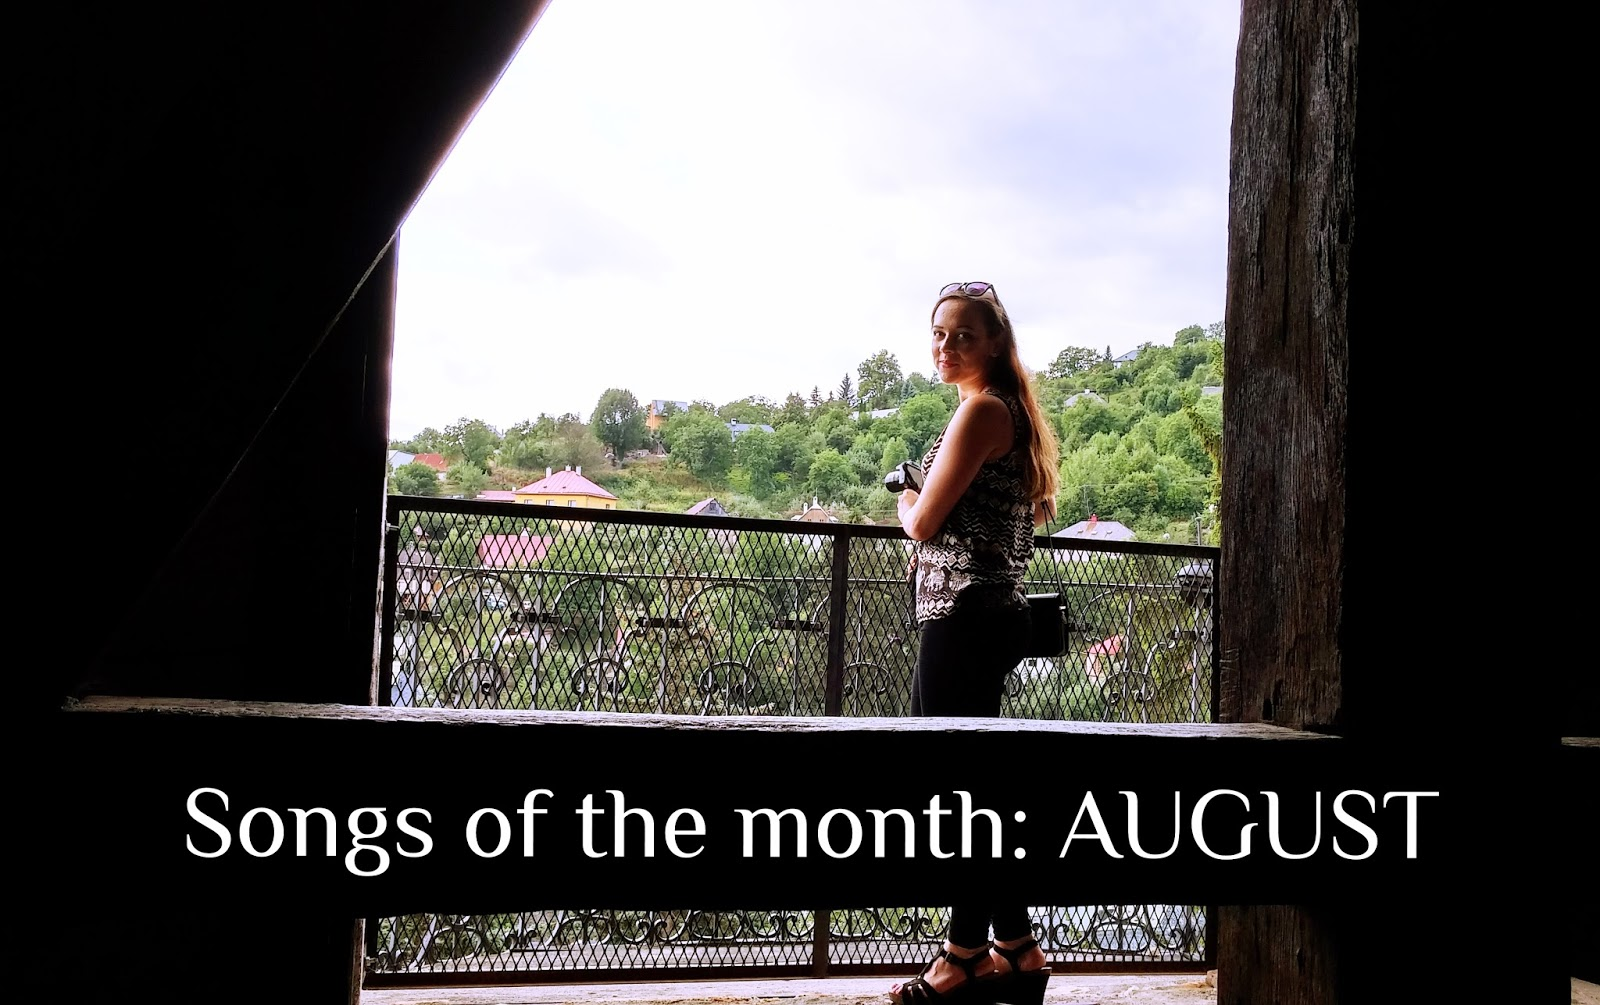 Songs of the month: August